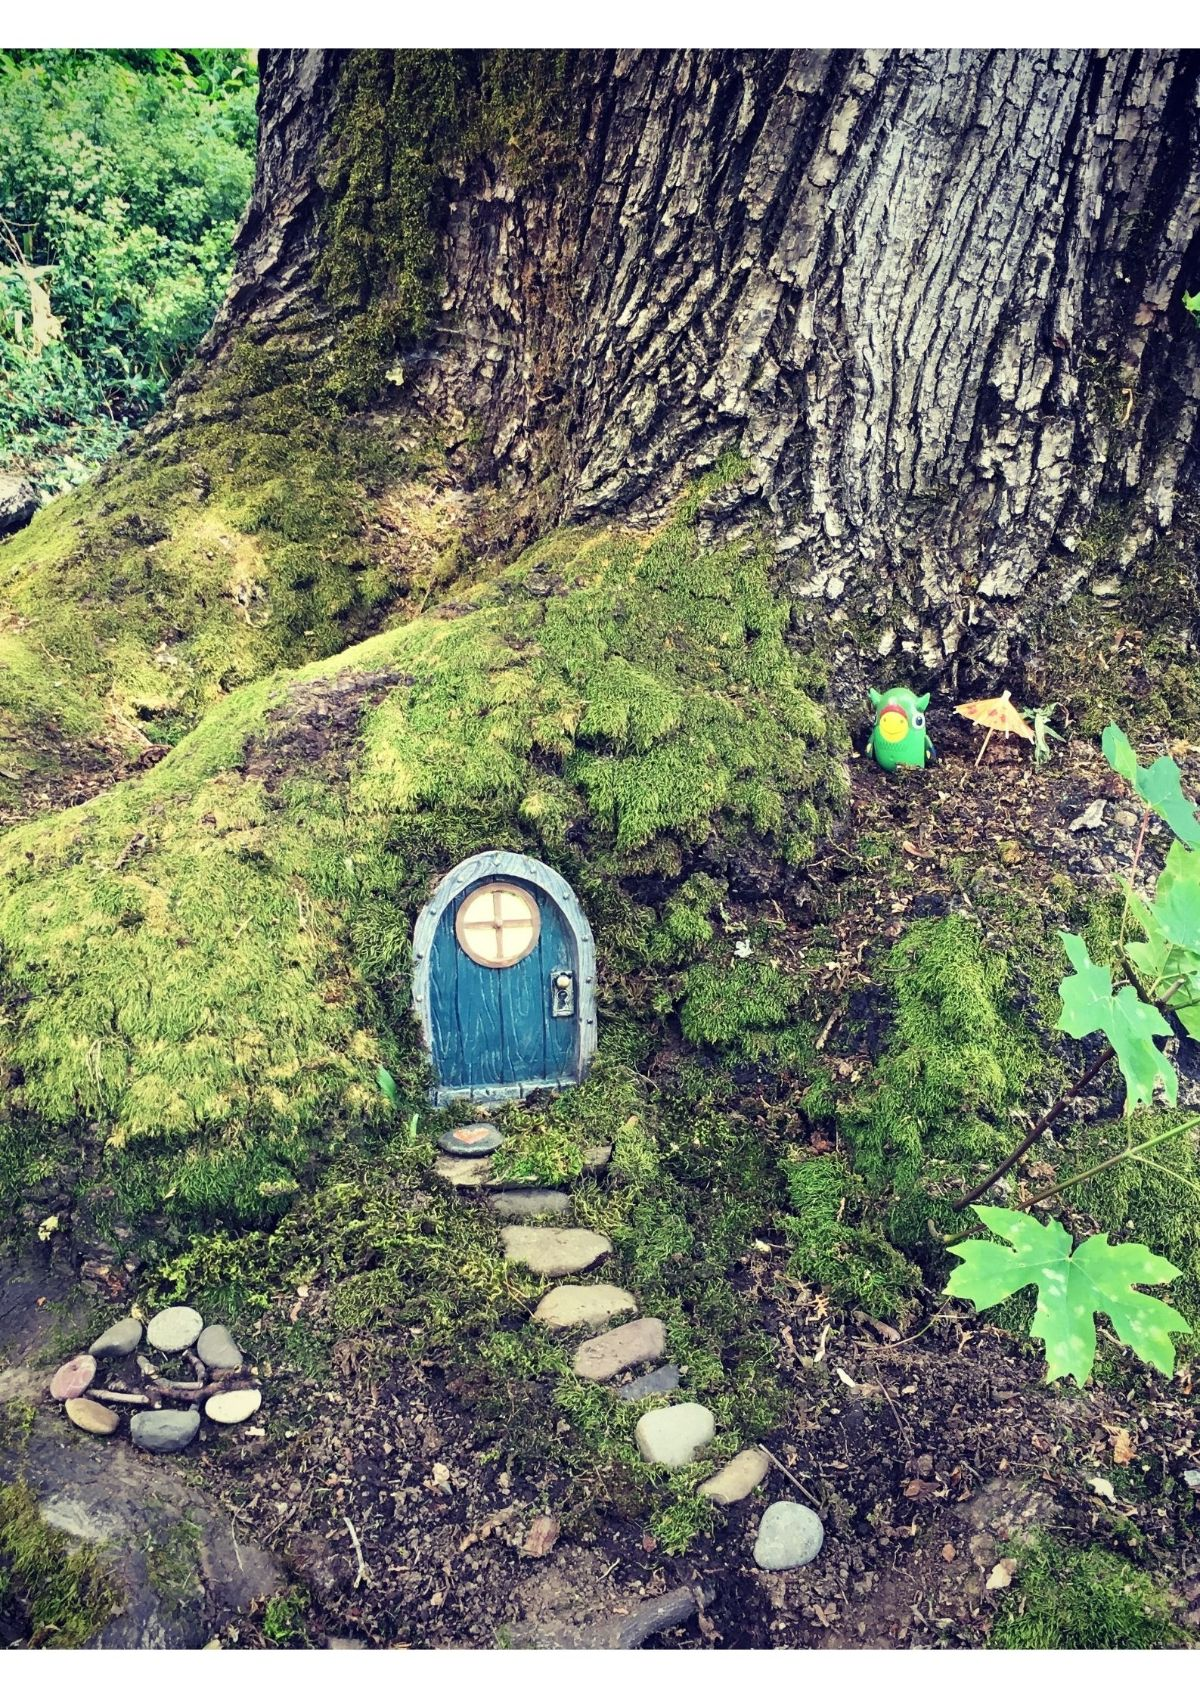 a fairy door is cut into the base of a tree in the forest with stones leading up to it like a path